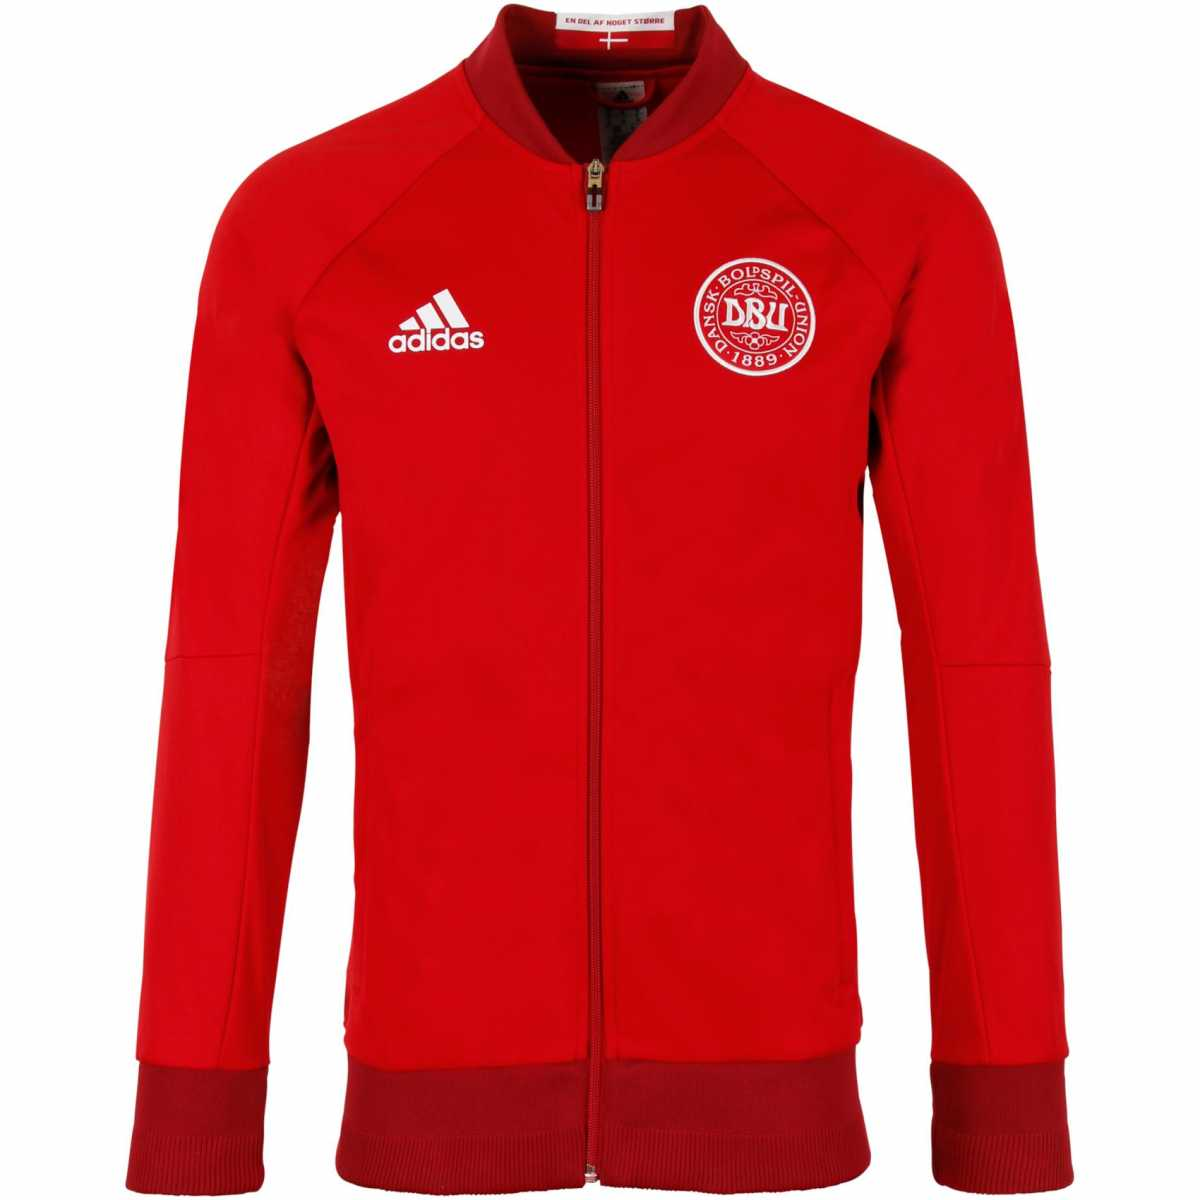 20162017 Denmark Adidas Anthem Jacket (Red)